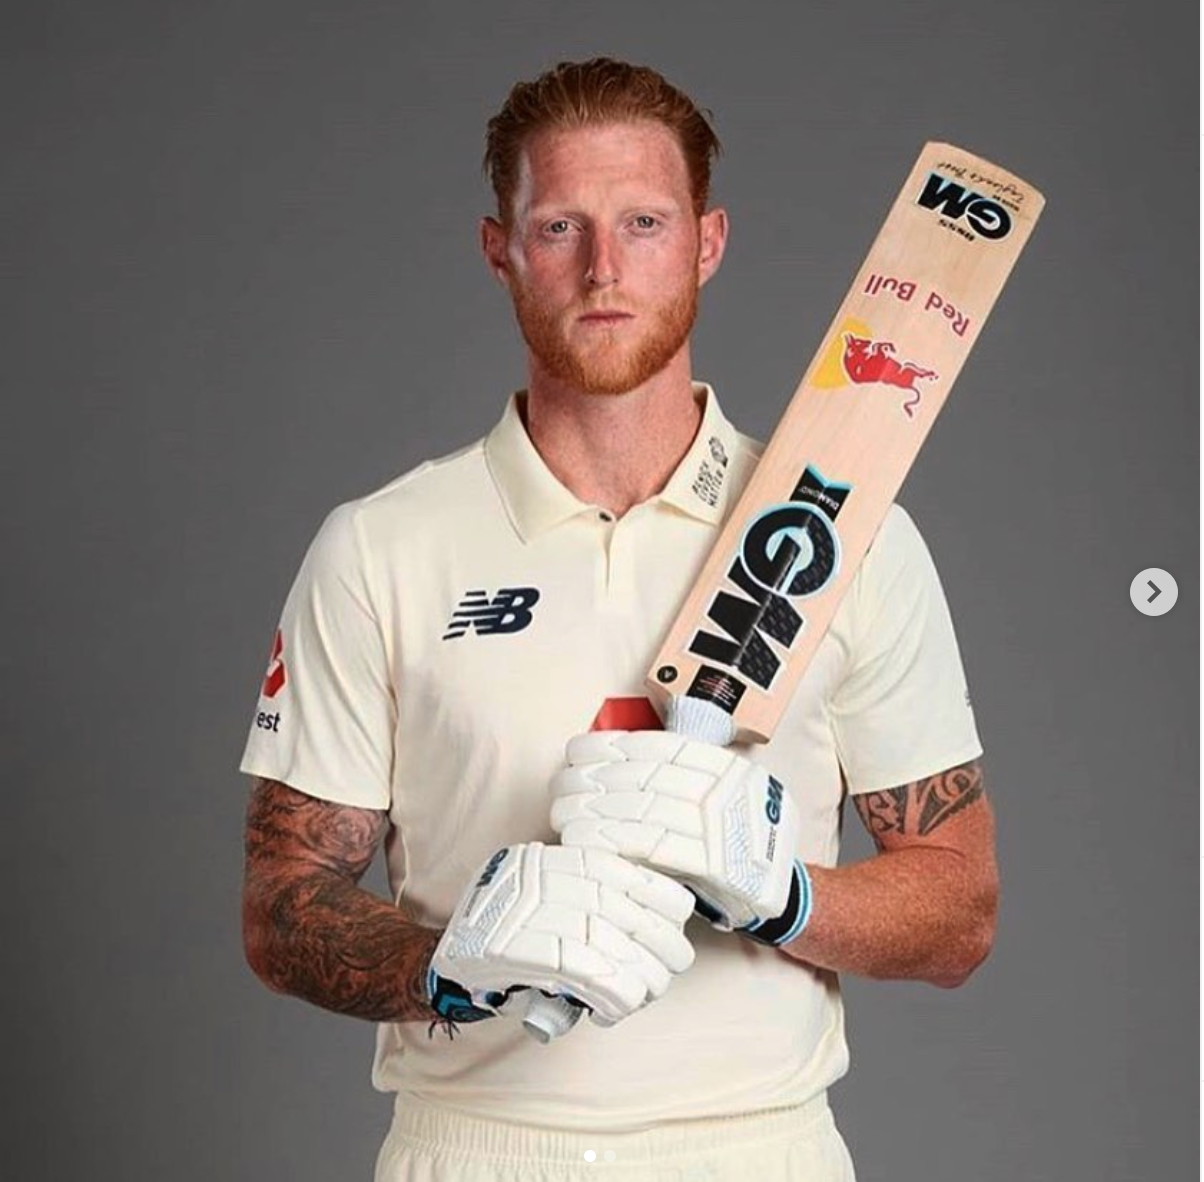 Photo Courtesy : Ben Stokes/Instagram